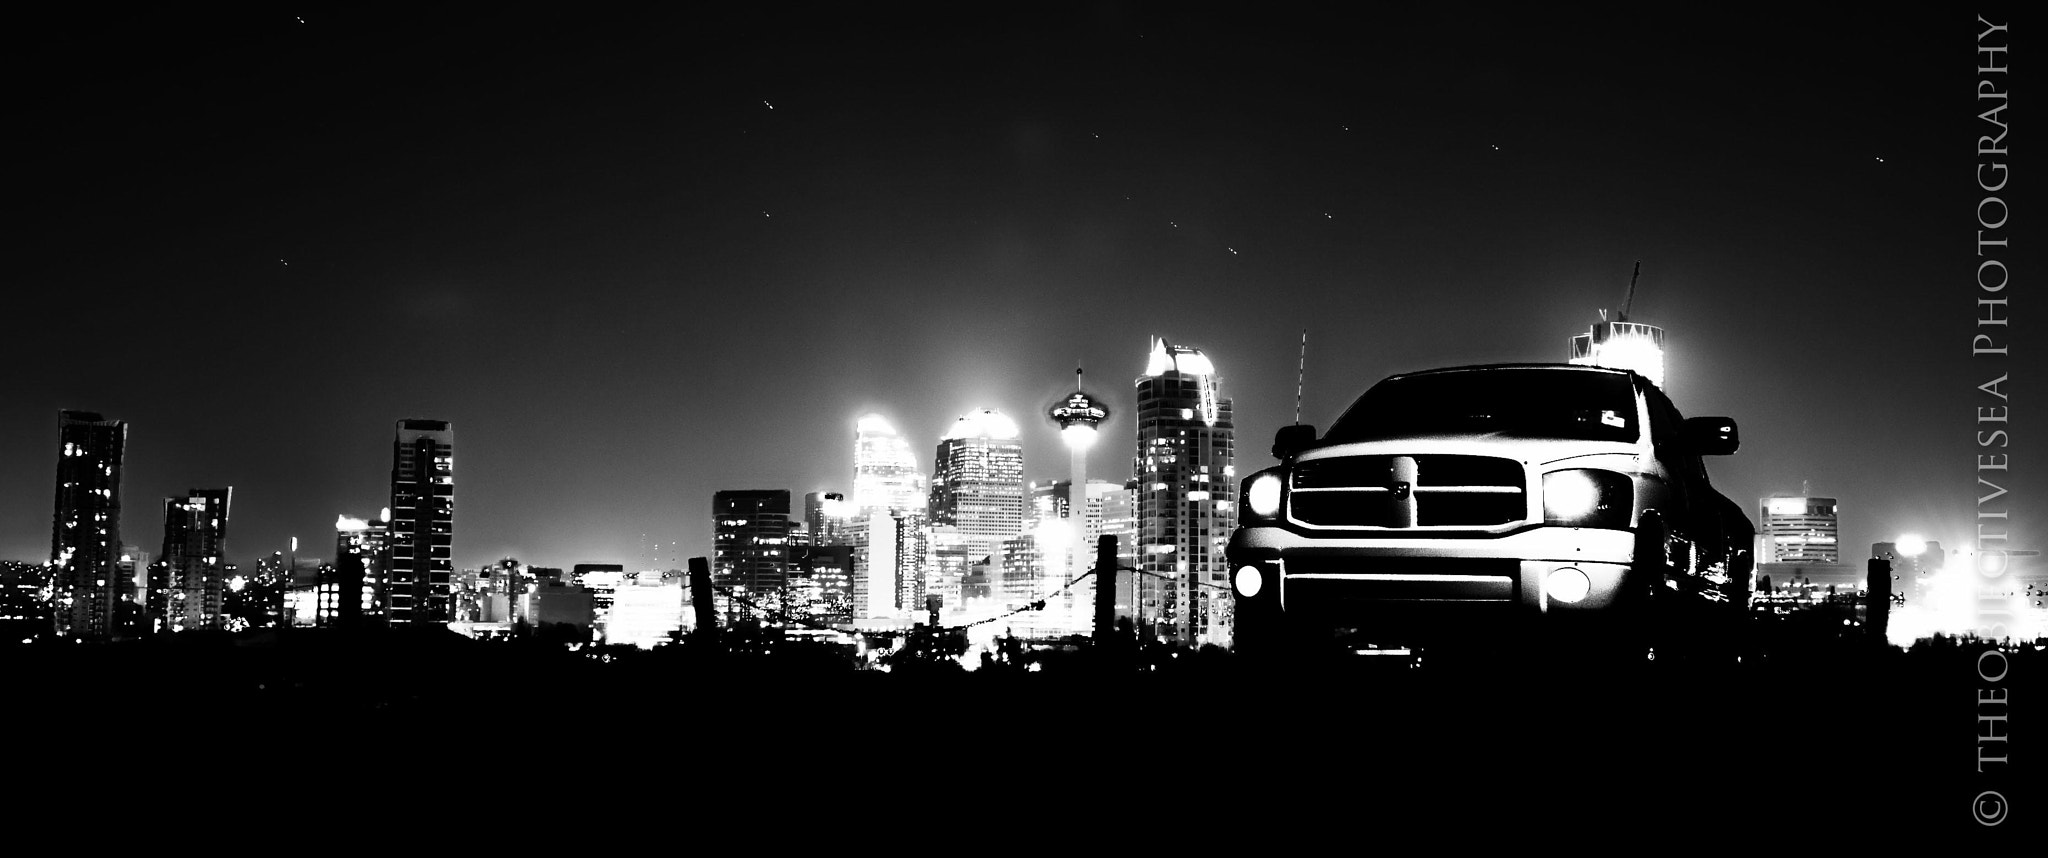 Photograph Ram 1500 by Kevin Smith on 500px